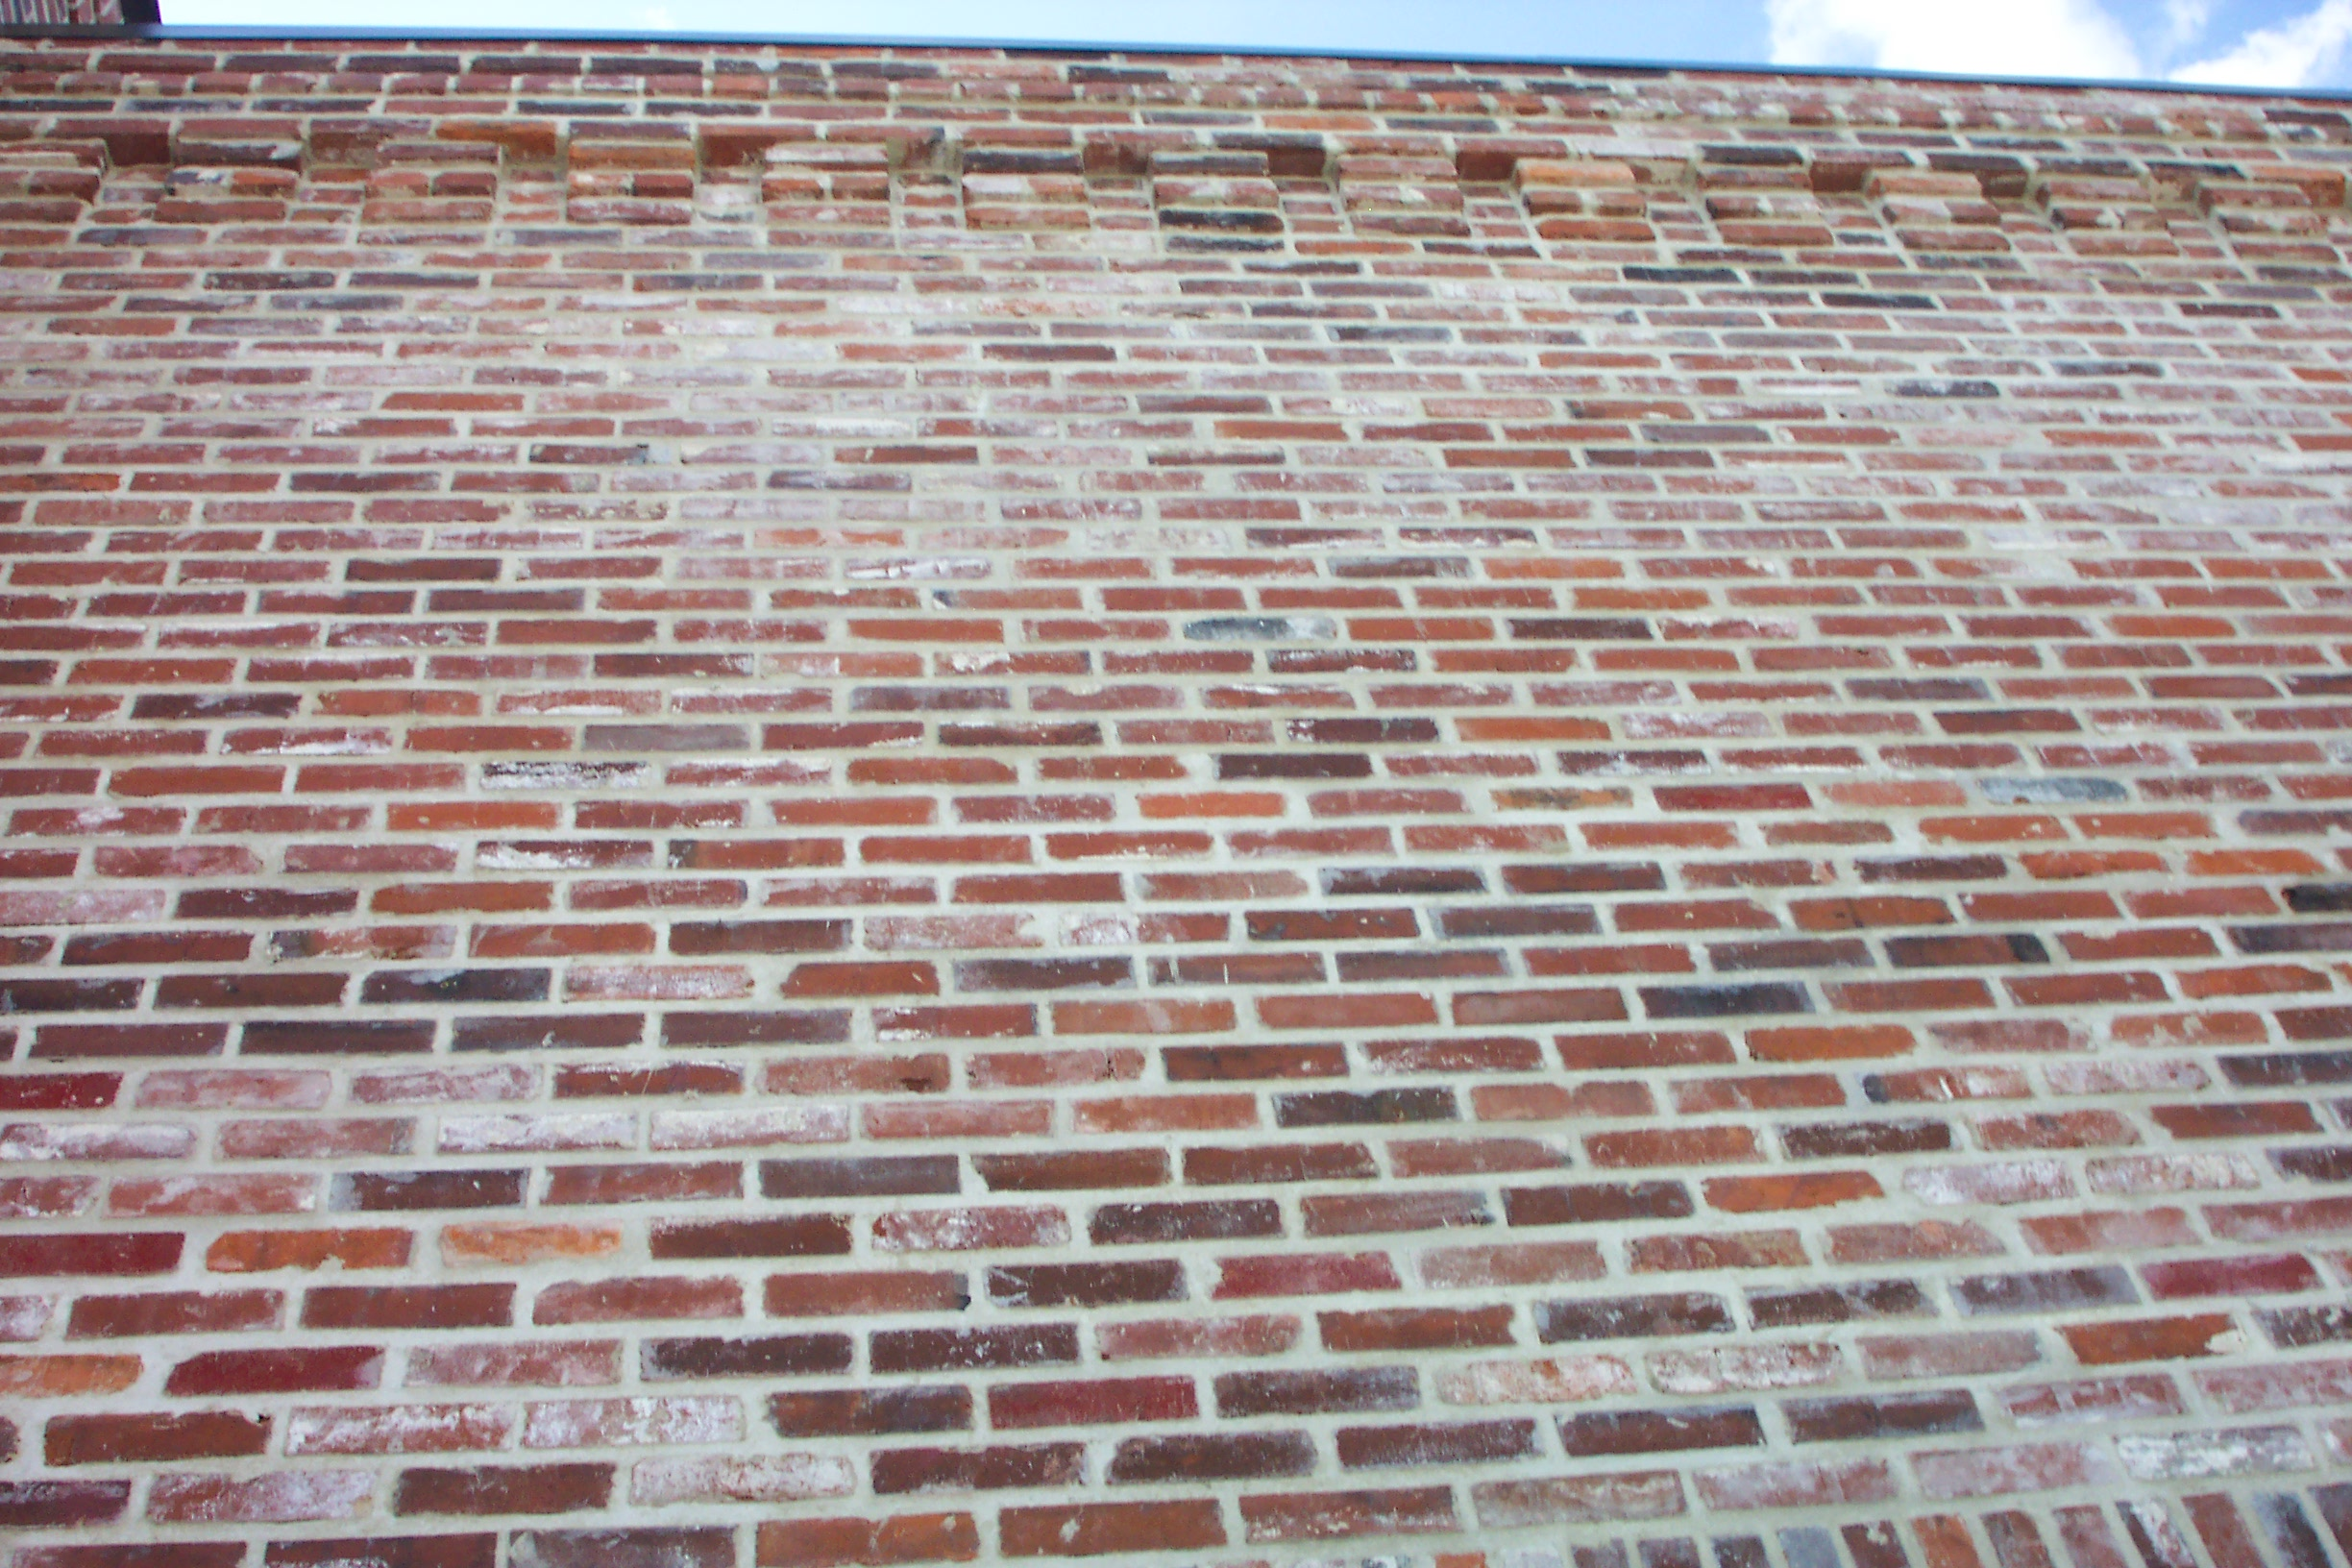 Antique brick gallery suppliers of rare antique brick for Uses for old bricks